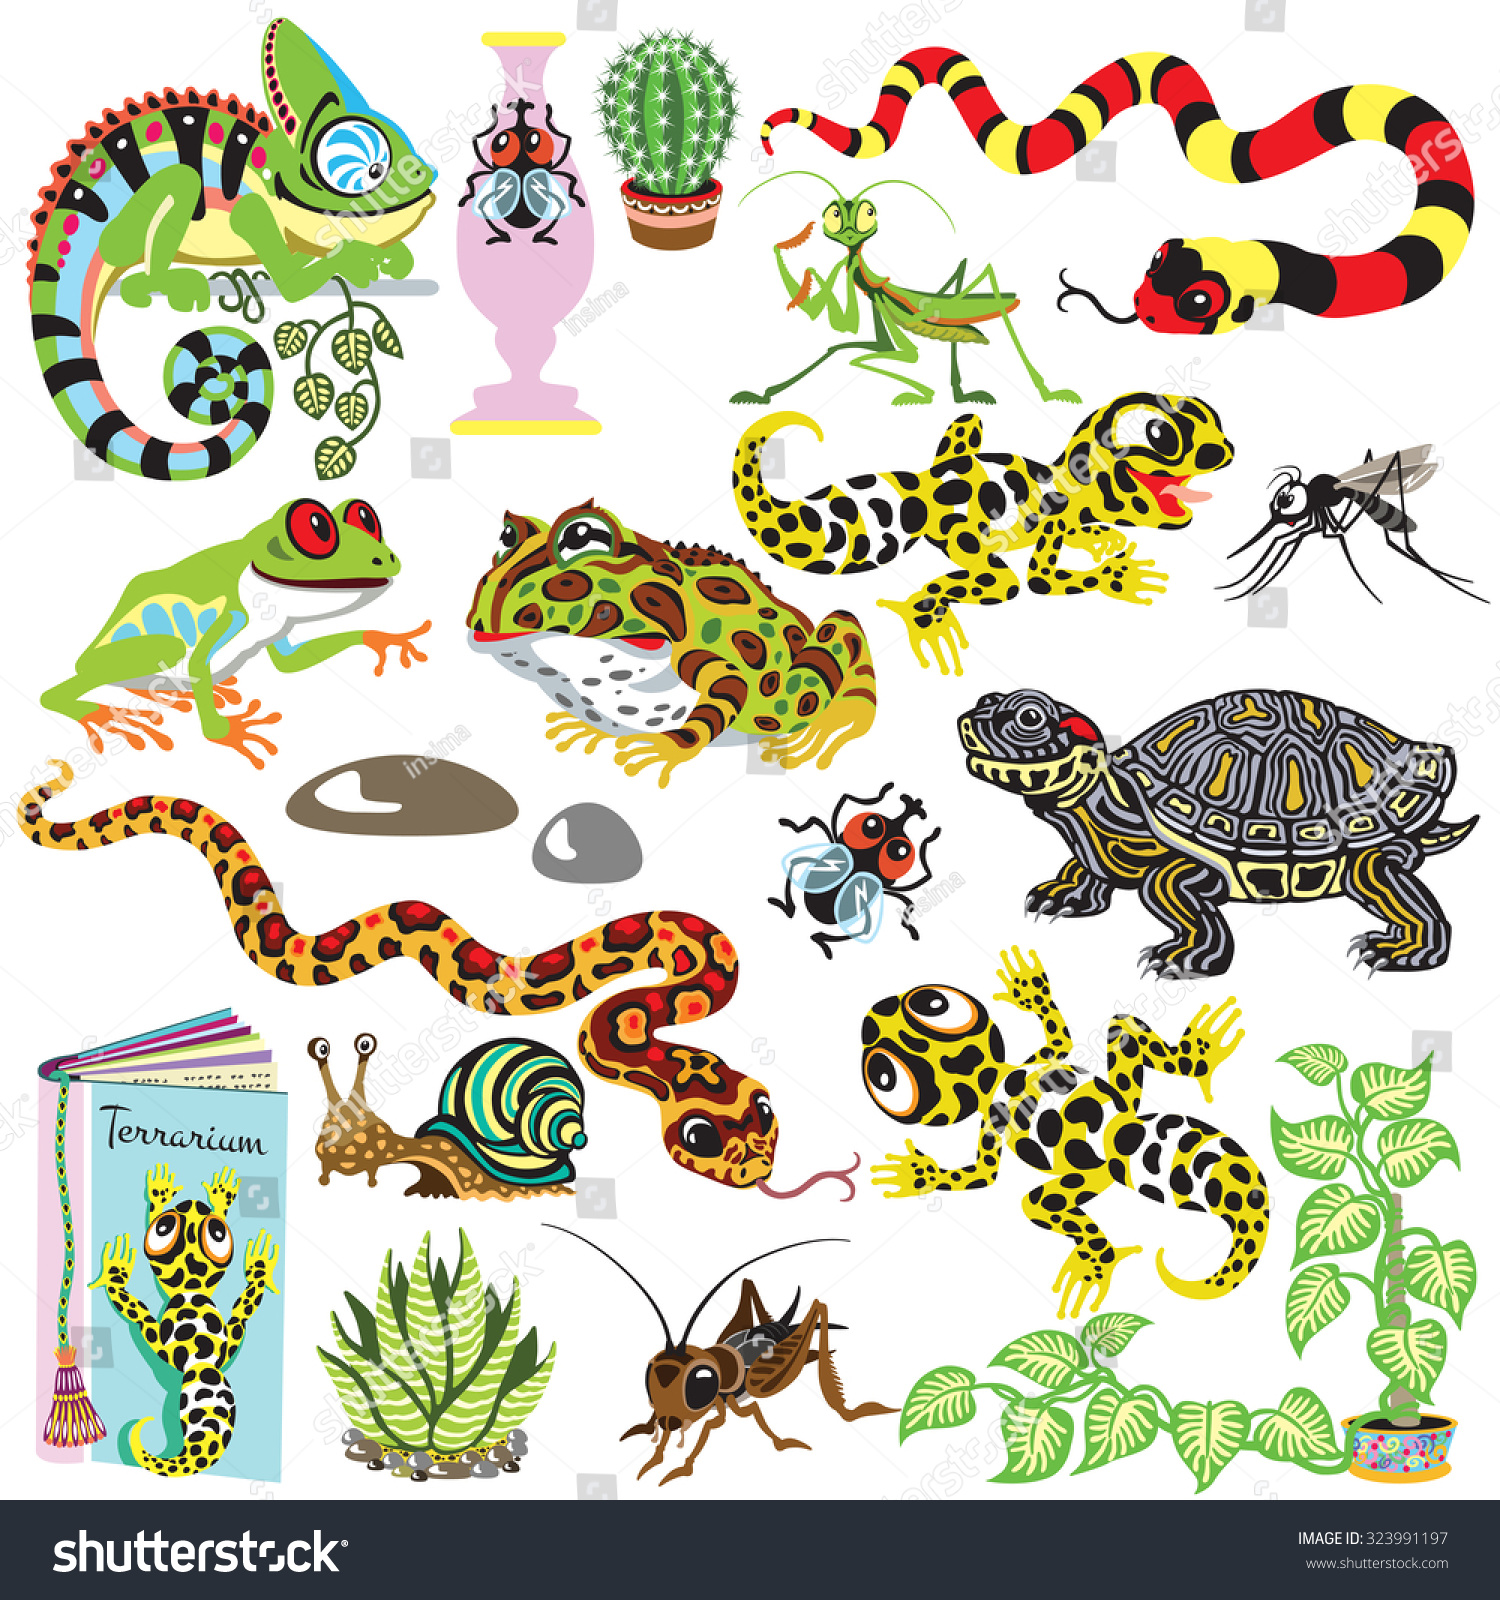 Reptiles Set Amphibians Insects Isolated Cartoon Stock